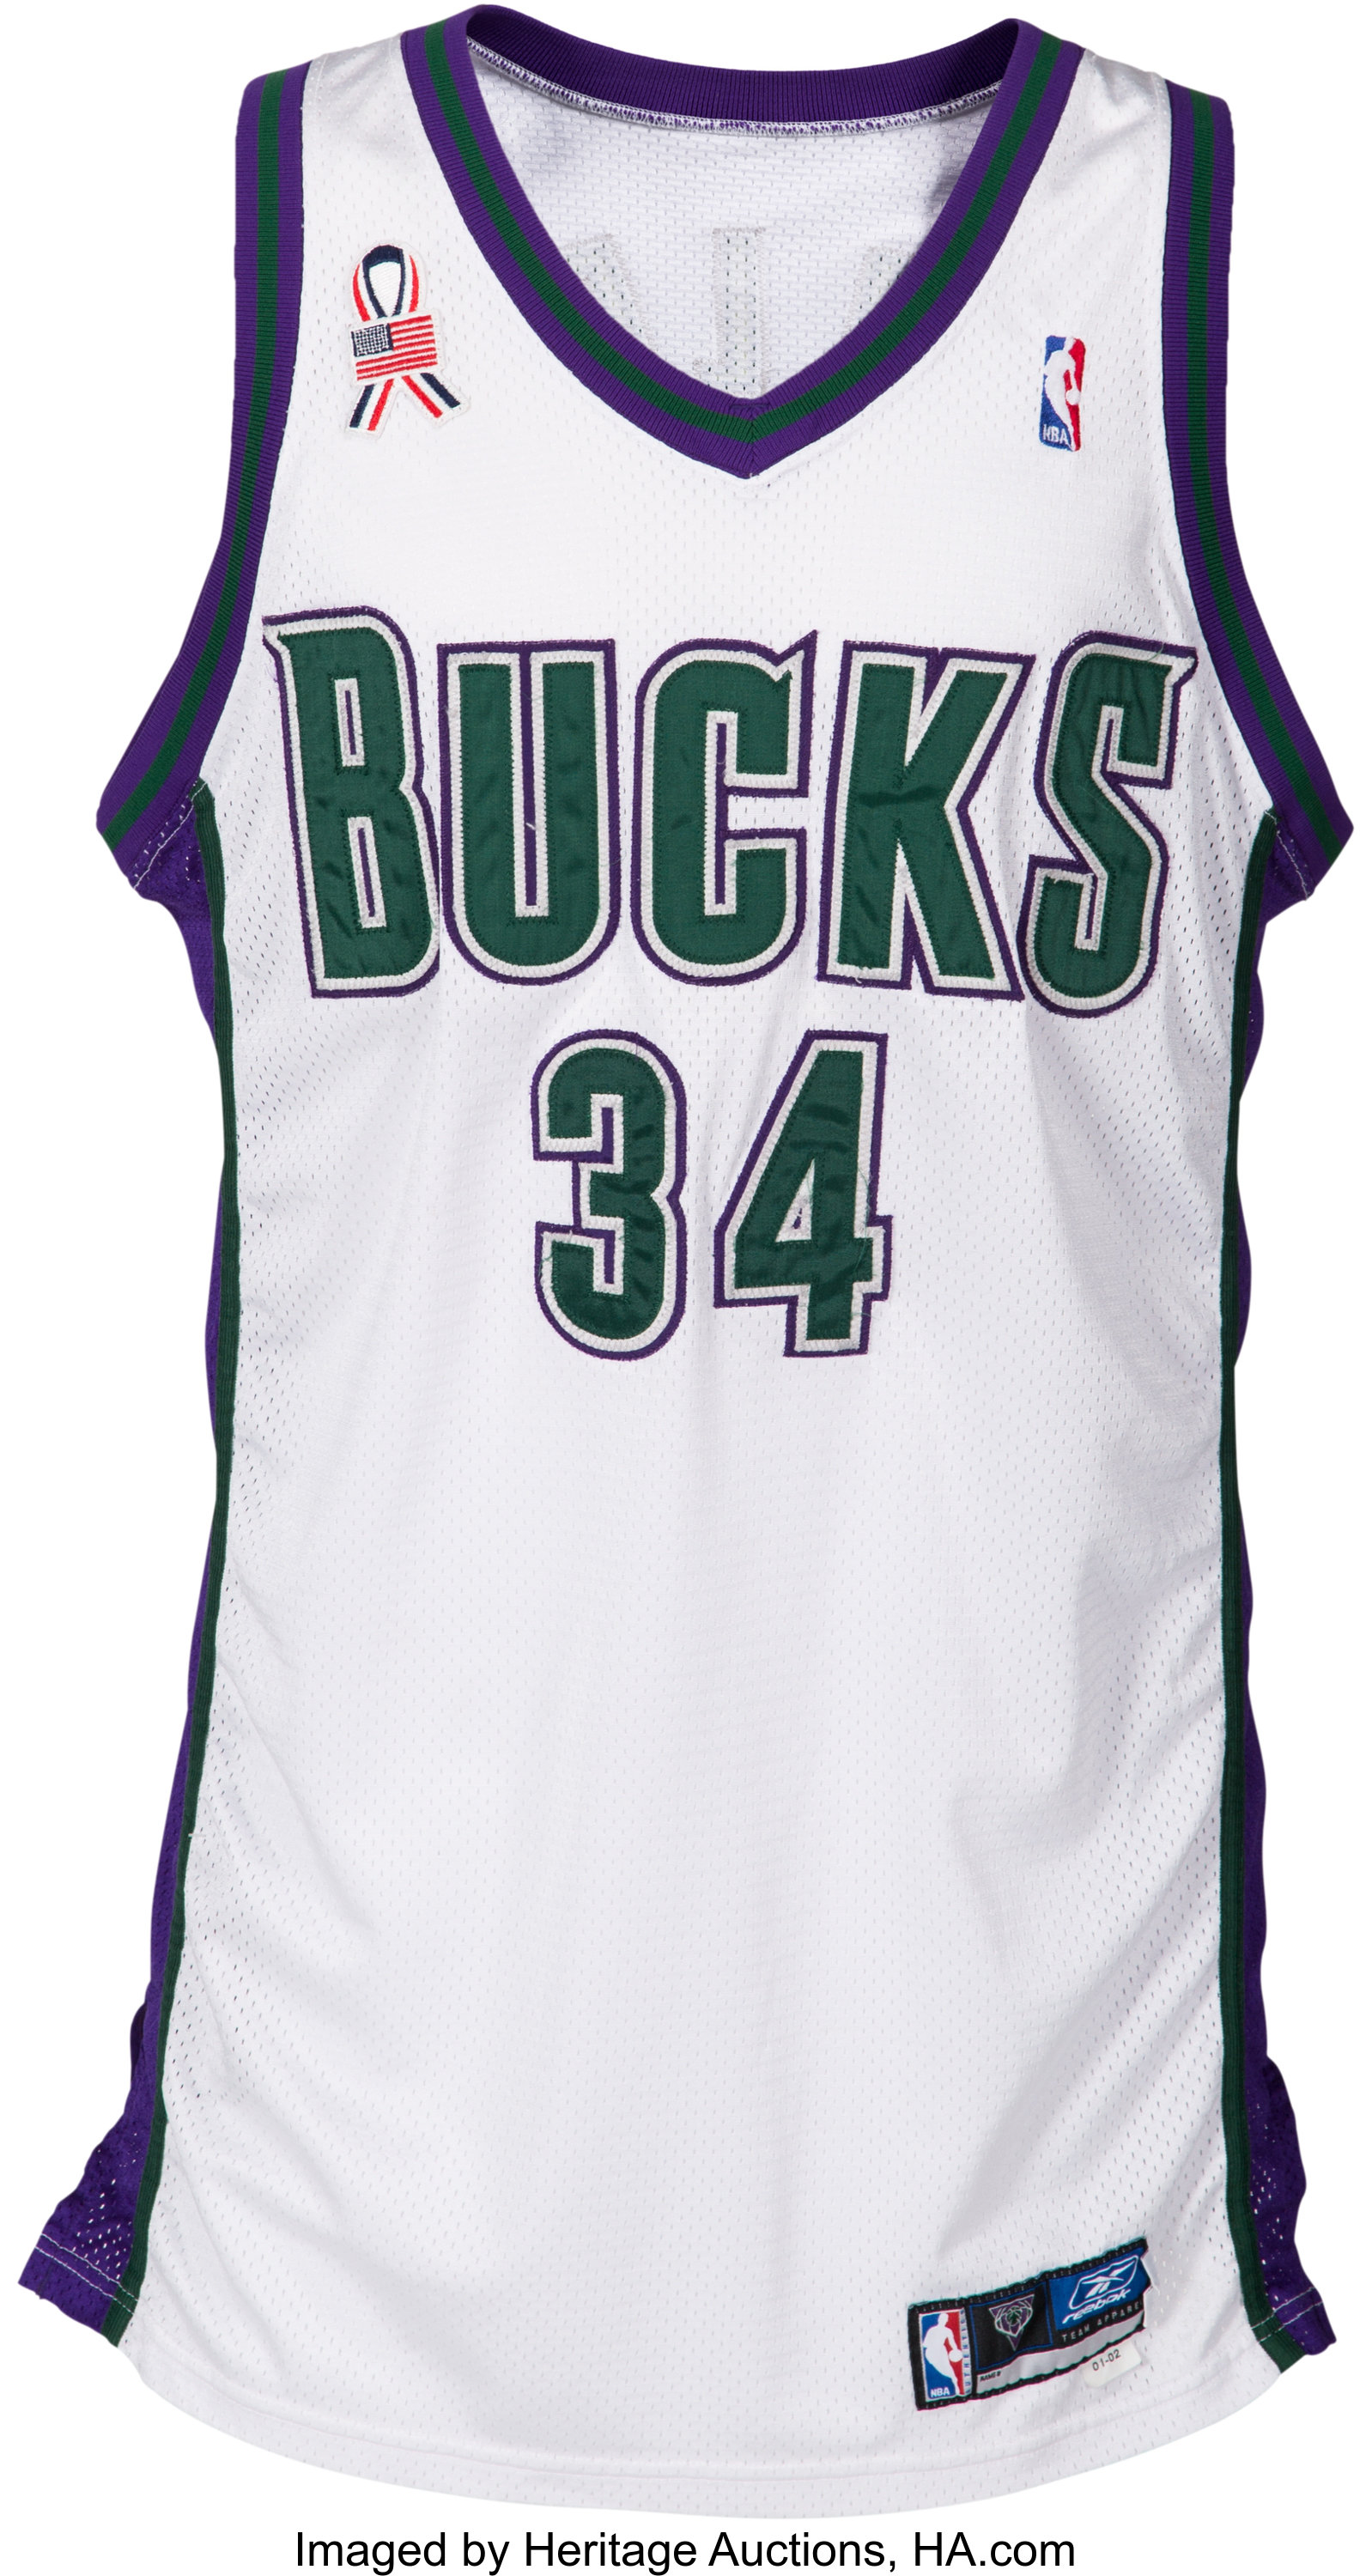 huge discount 4c500 dbff3 2001-02 Ray Allen Game Worn Milwaukee Bucks Jersey - Photo ...